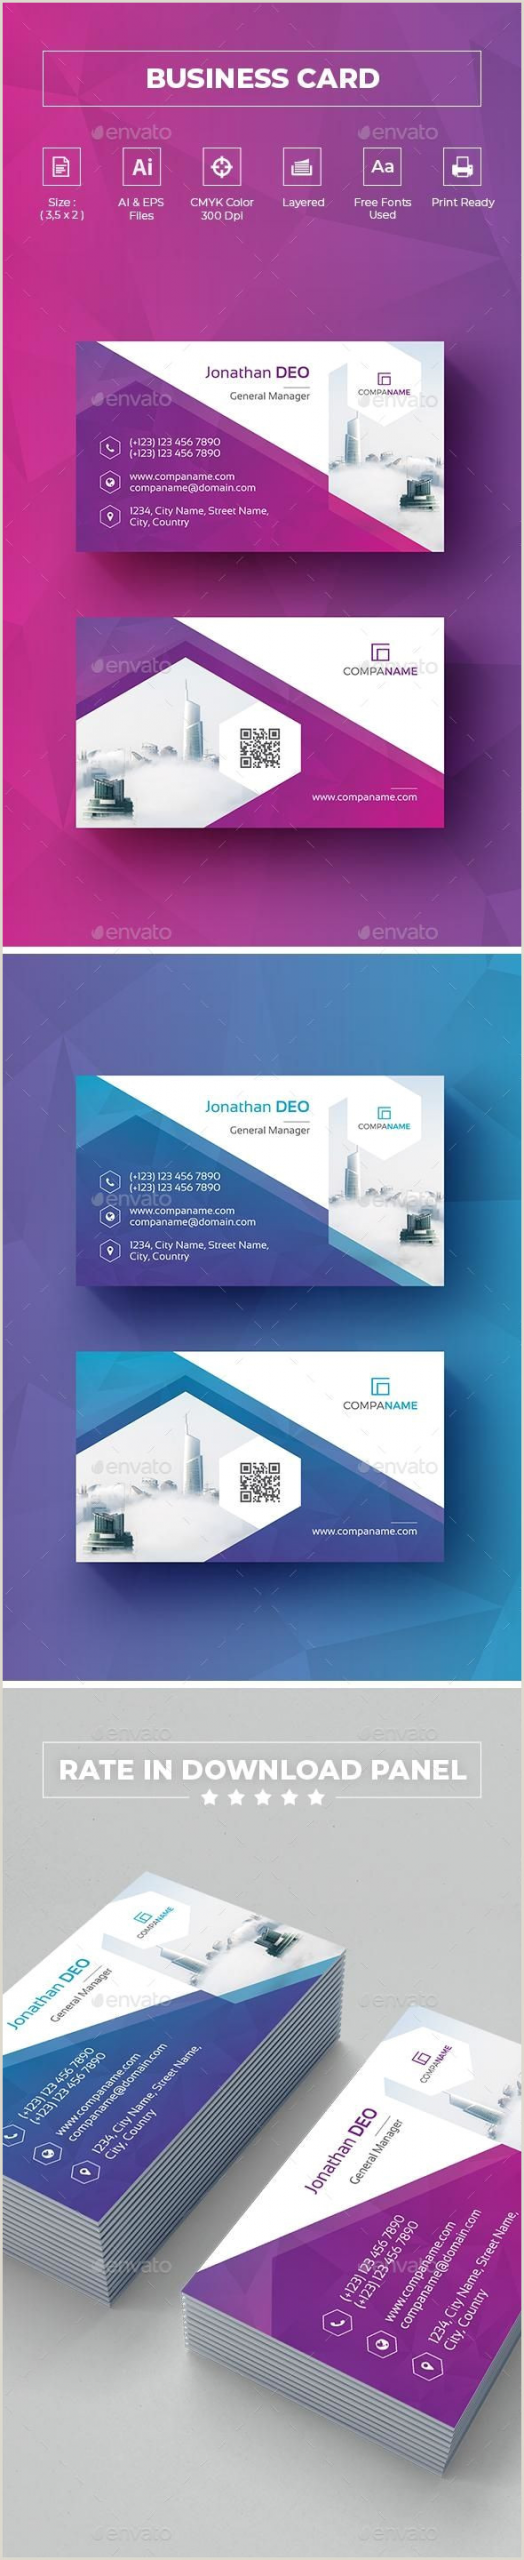 Where To Buy Business Cards Business Card